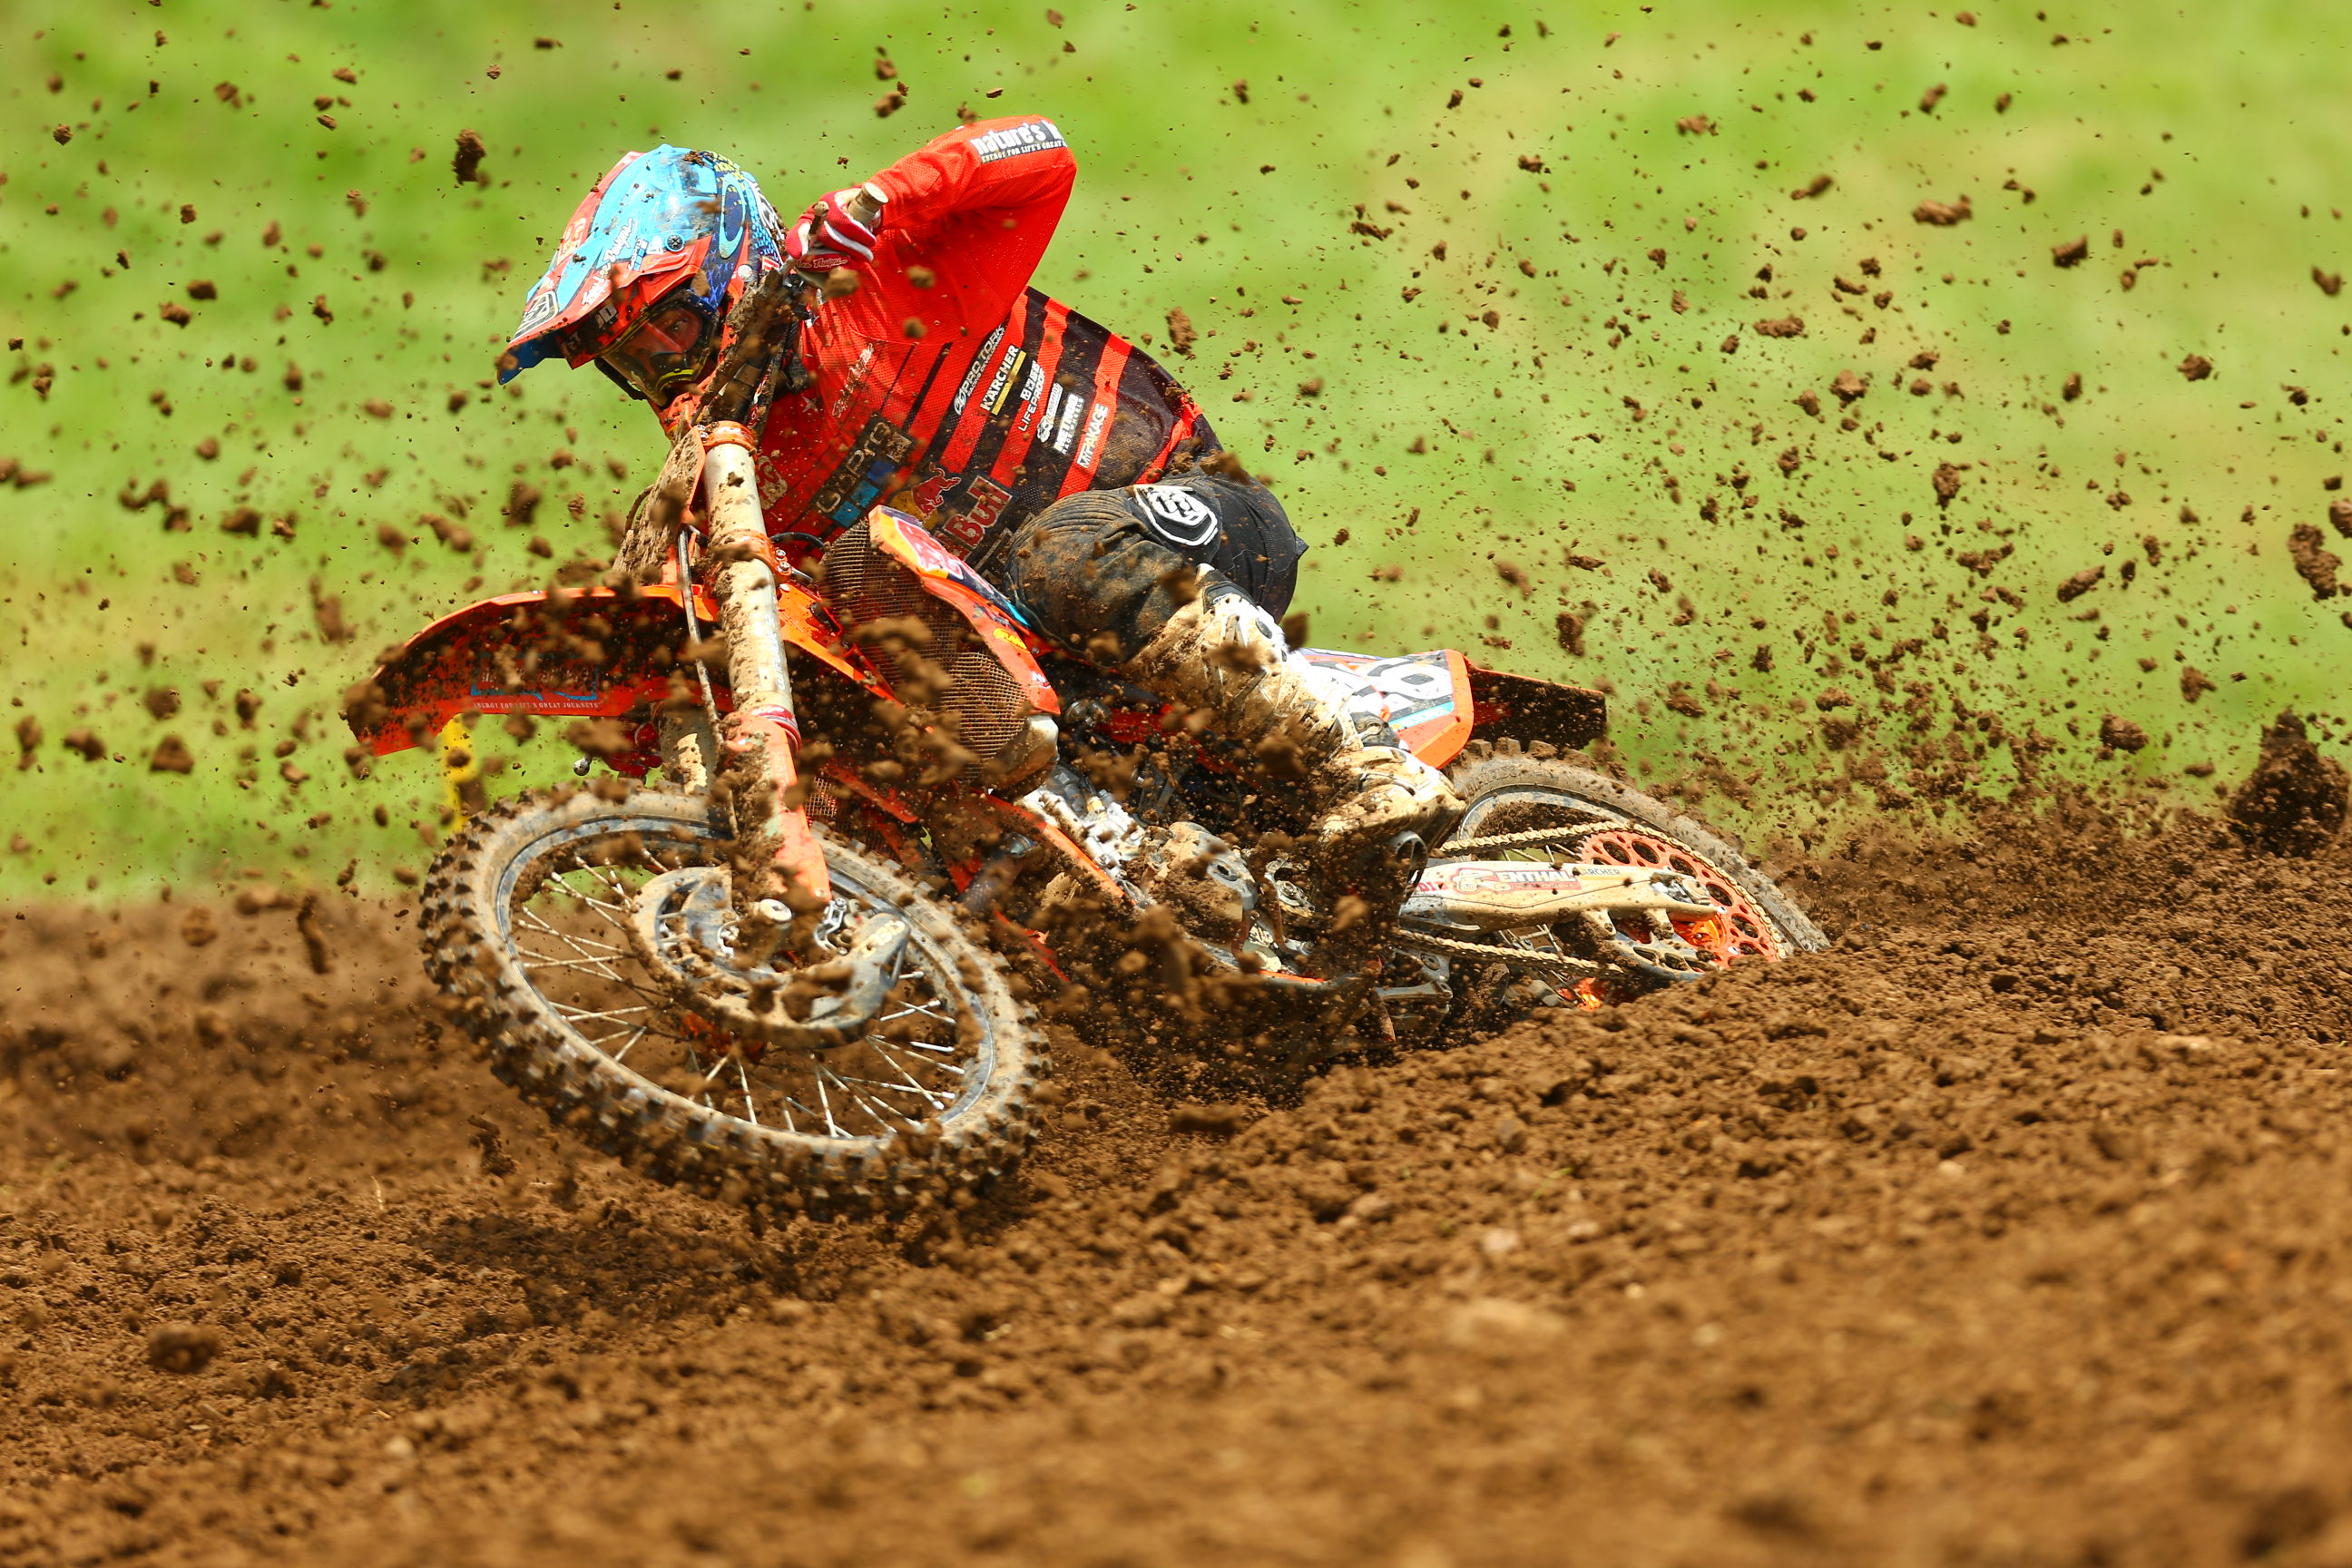 Troy Lee Designs/Red Bull/KTM's Martin Moves Back Into Second In Championship Standings